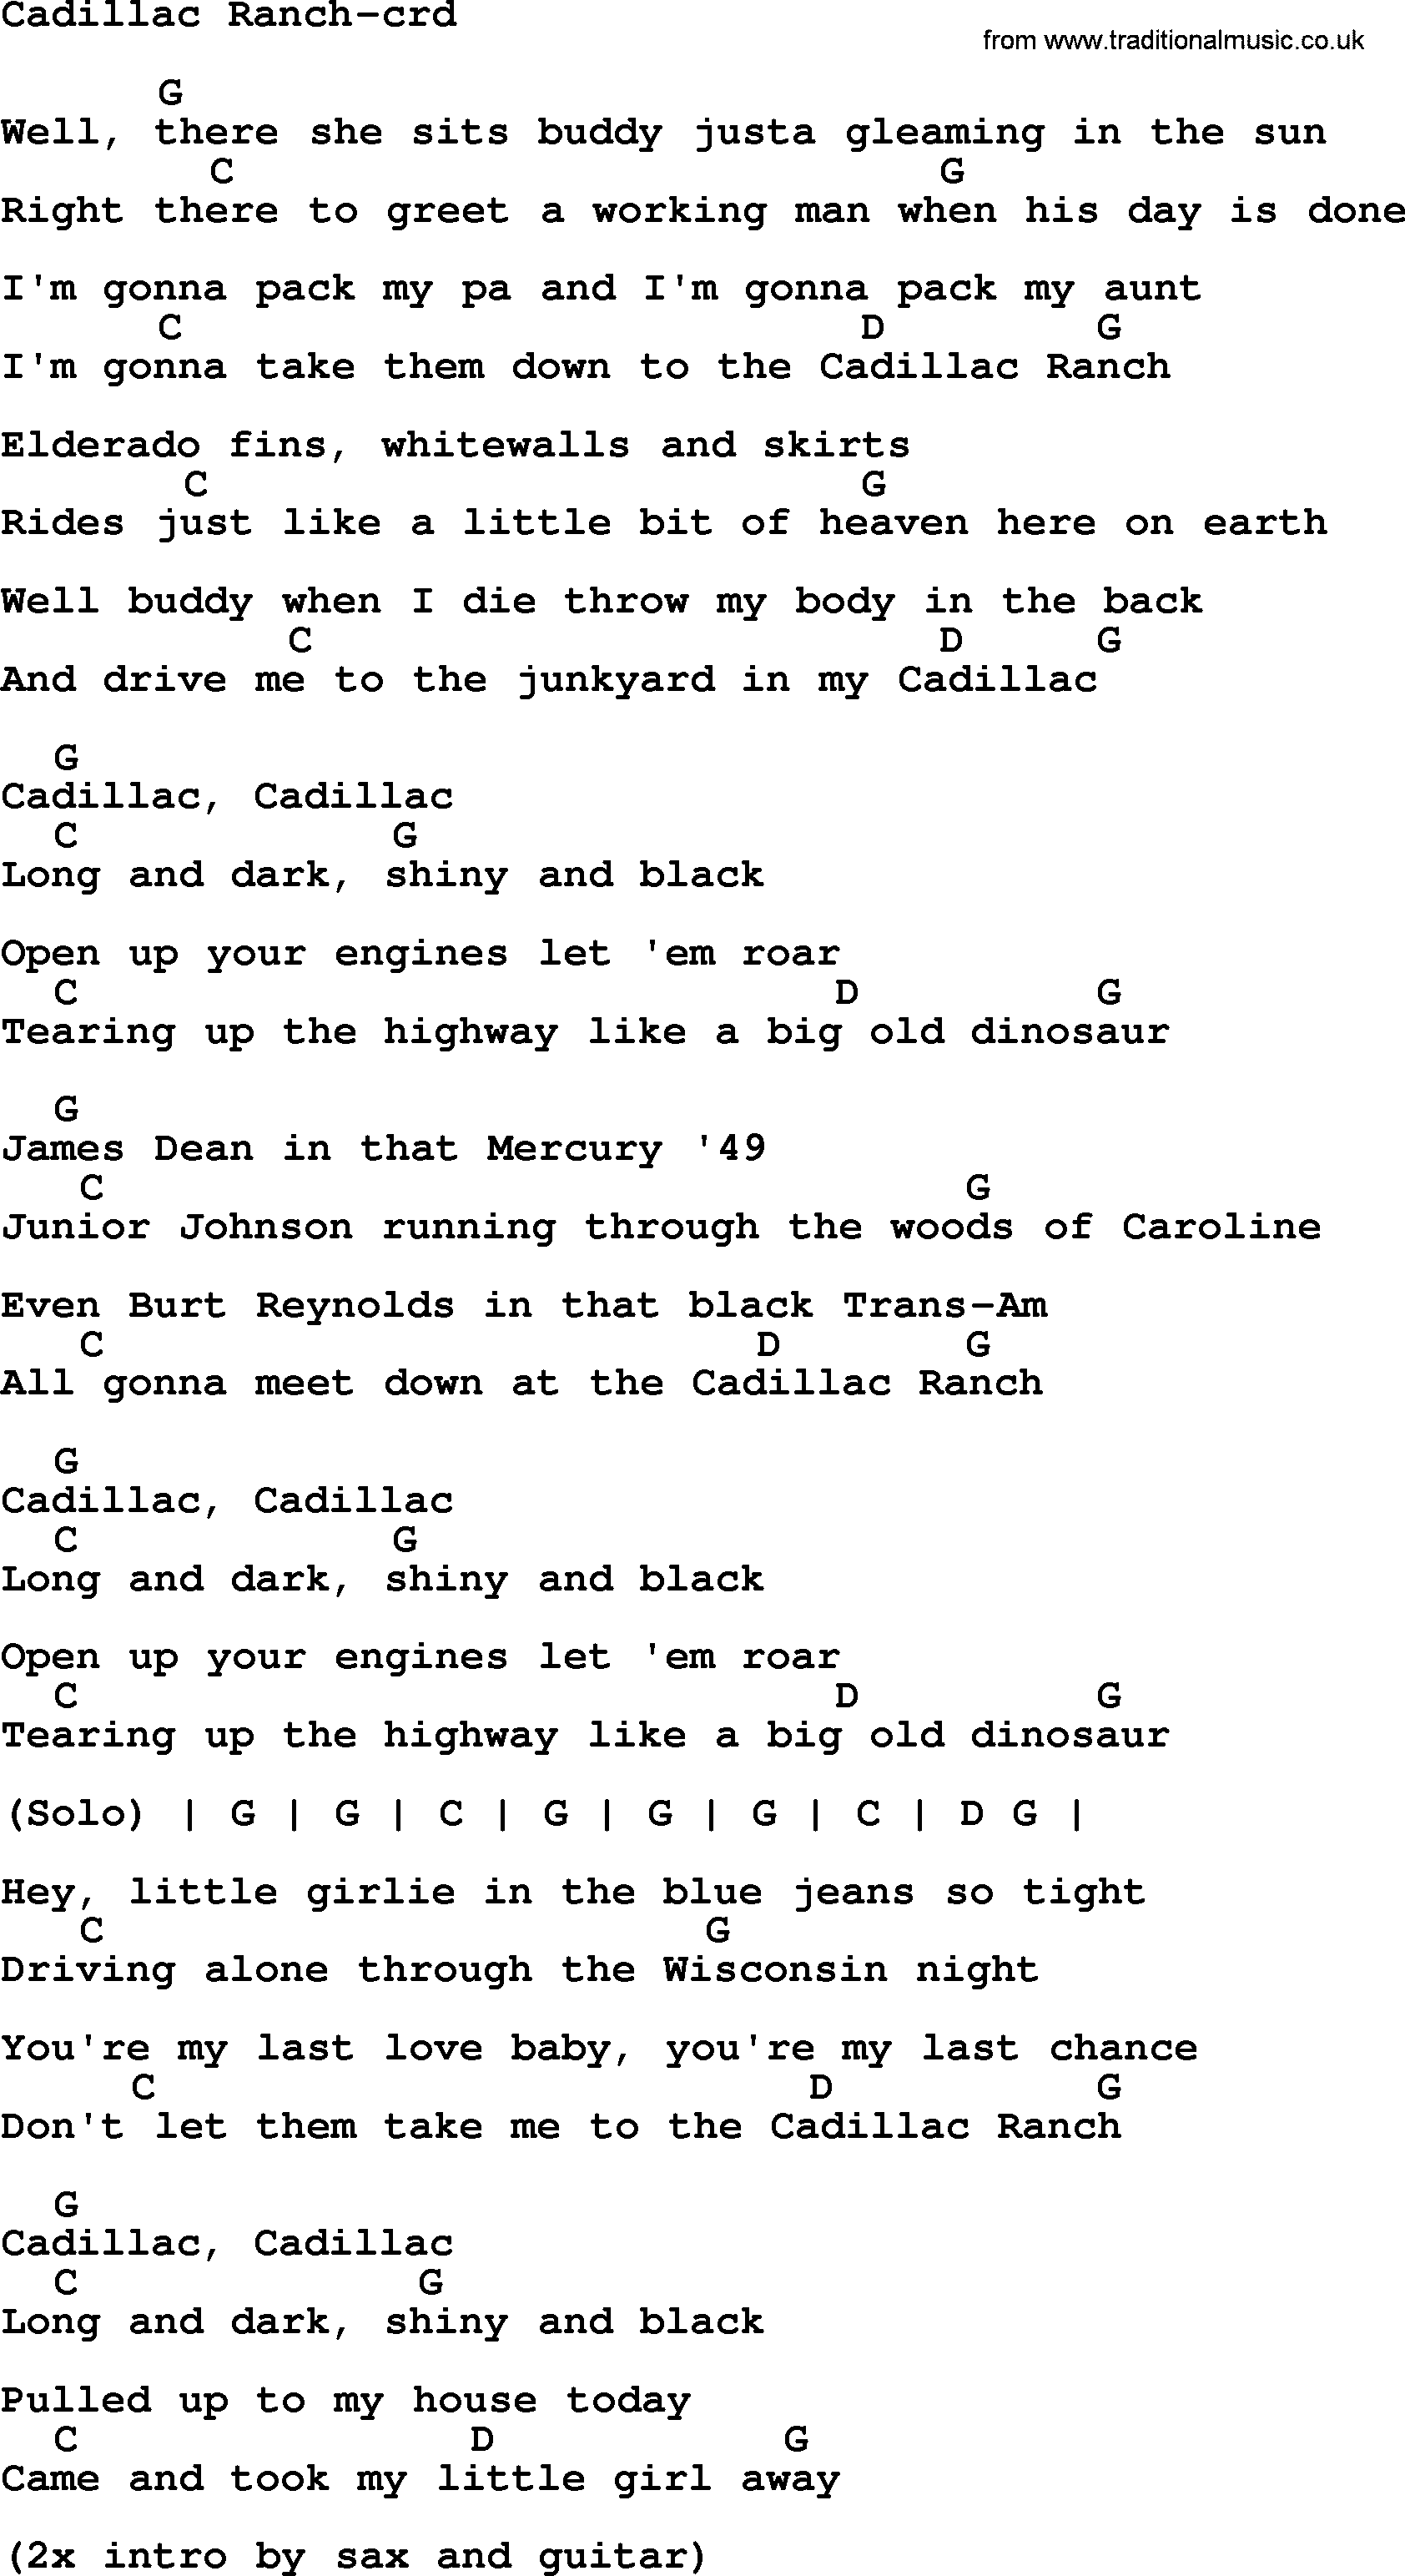 cadillac ranch song lyrics 2016 car release date. Cars Review. Best American Auto & Cars Review